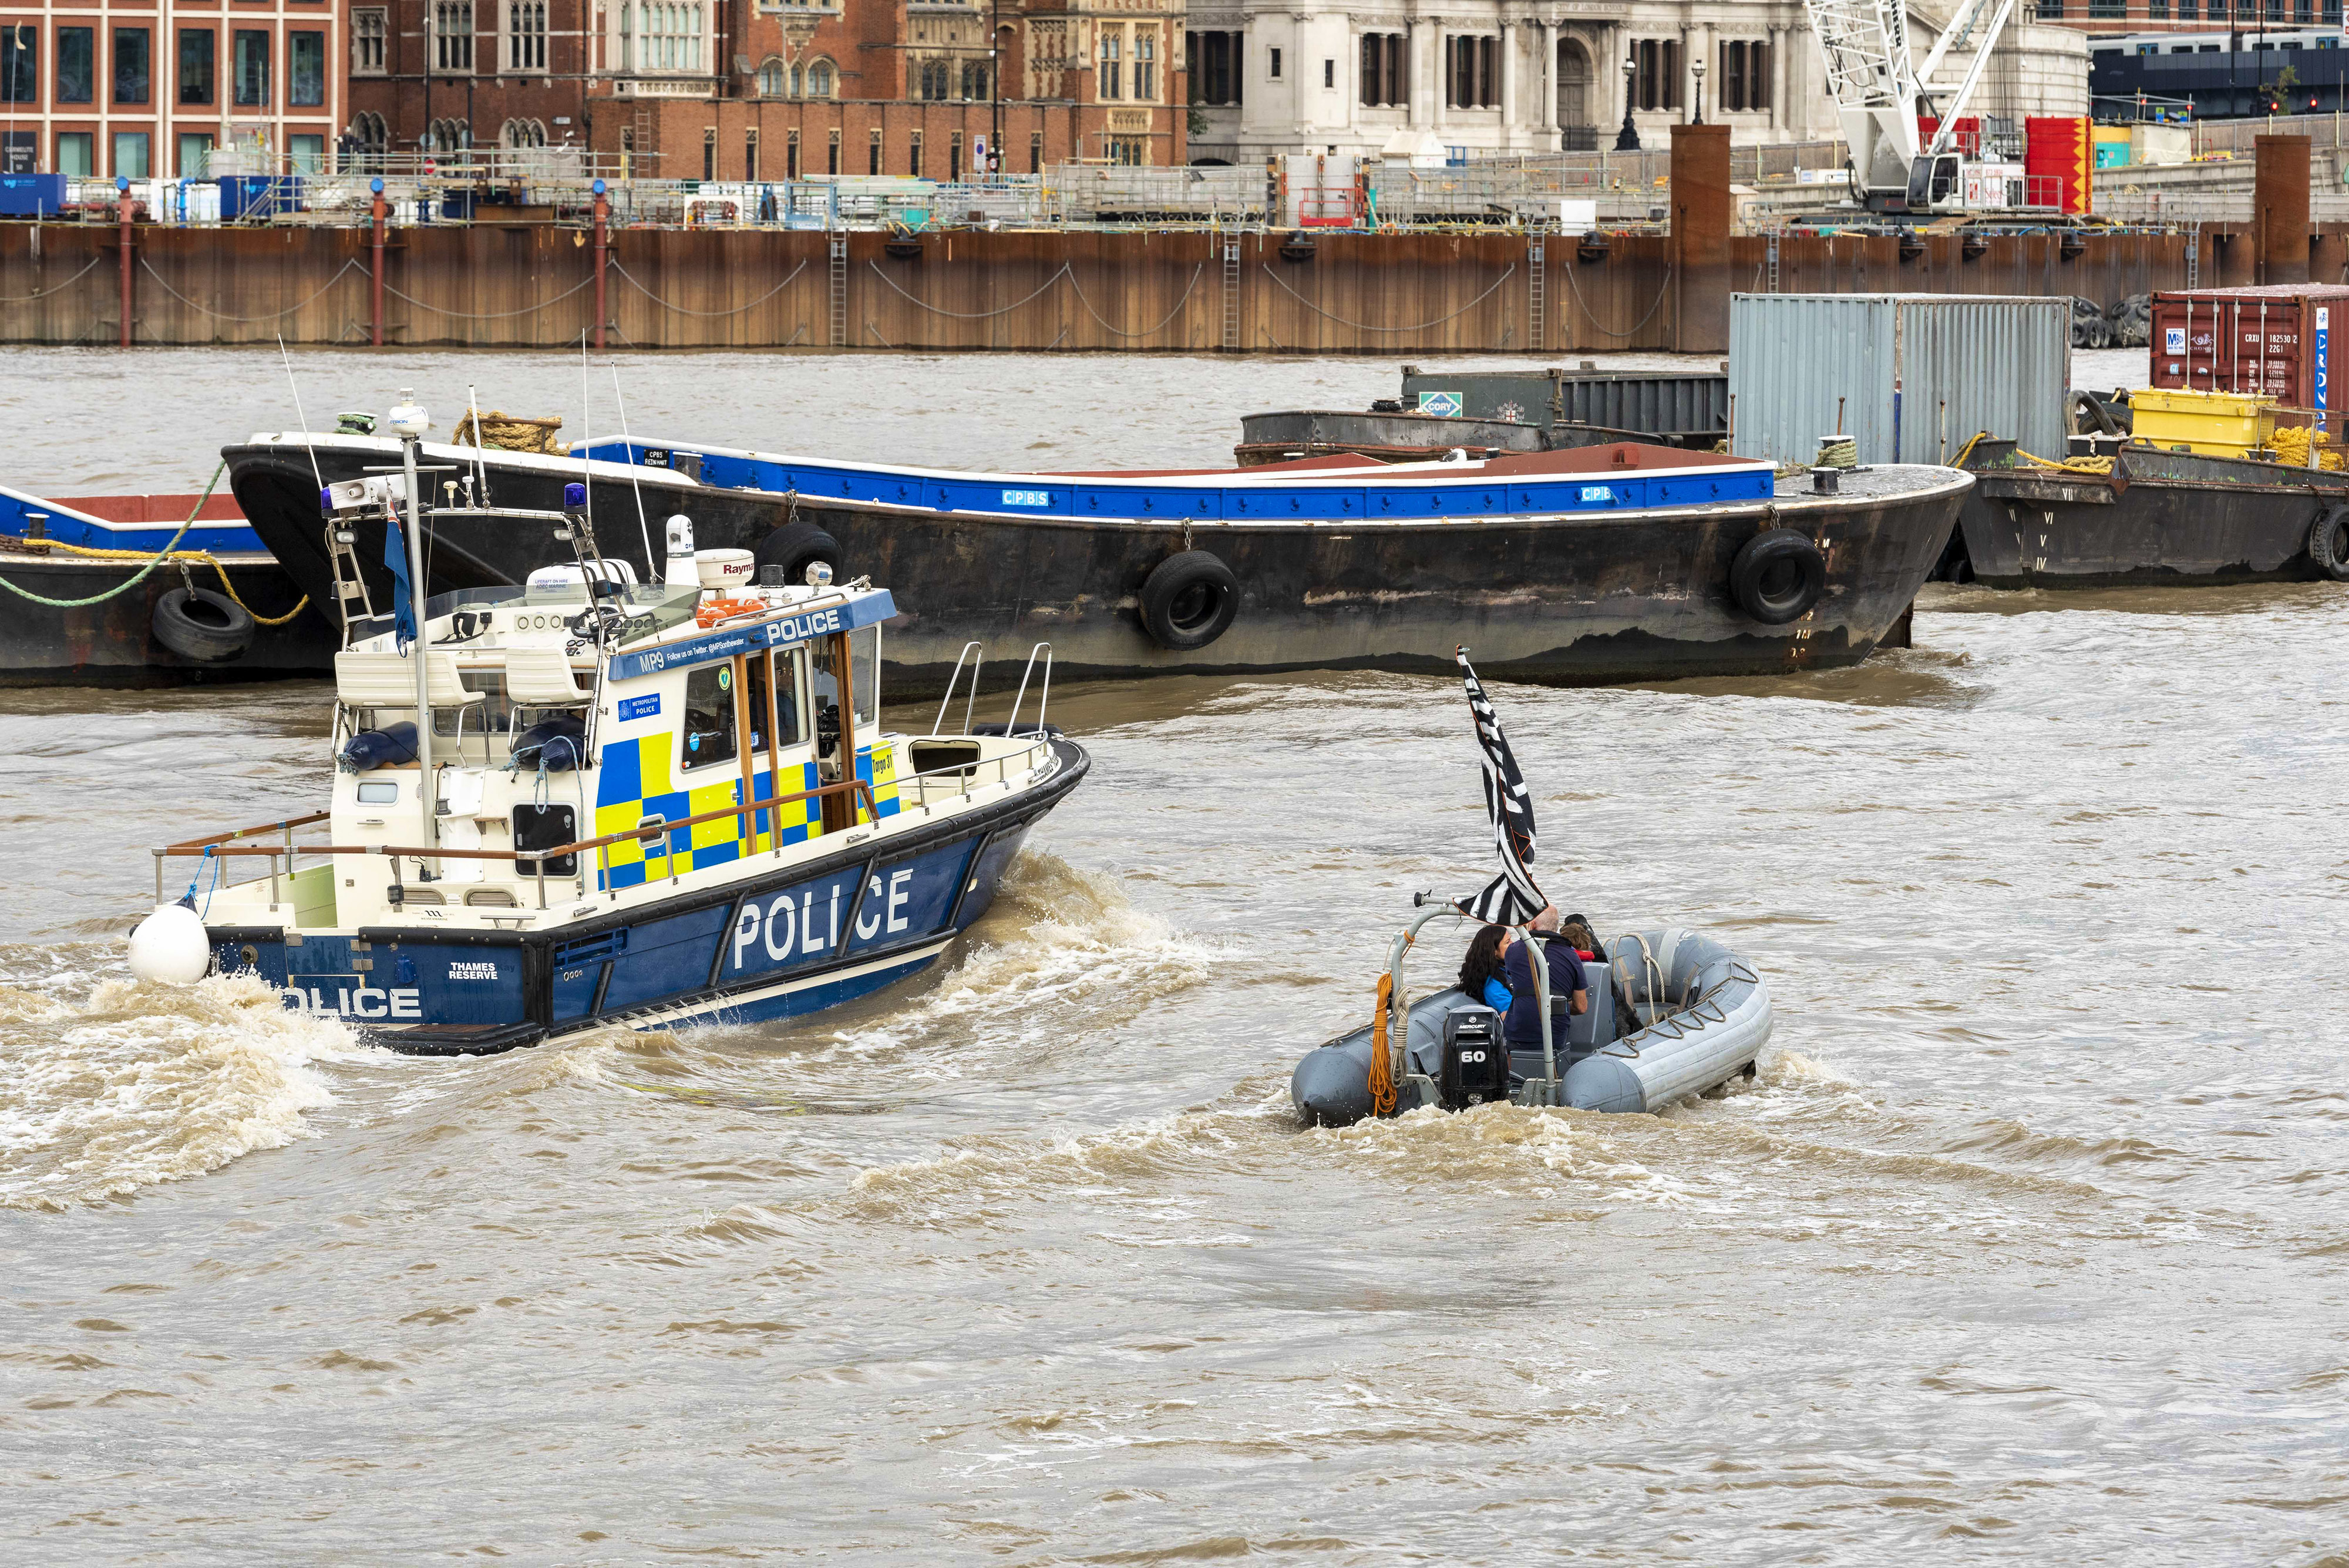 A police launch passes an Extinction Rebellion Marine rib boat on the River Thames during the Extinction Rebellion Macabre Beach Party. A beach party (on grass) next to the River Thames was held by the Extinction Rebellion Marine supporters to highlight the dangers of the extreme weather caused by climate change and sound an alarm for the urgent need to take action now to avert catastrophic flooding in London, the UK and the whole world. (Photo by Dave Rushen / SOPA Images/Sipa USA)